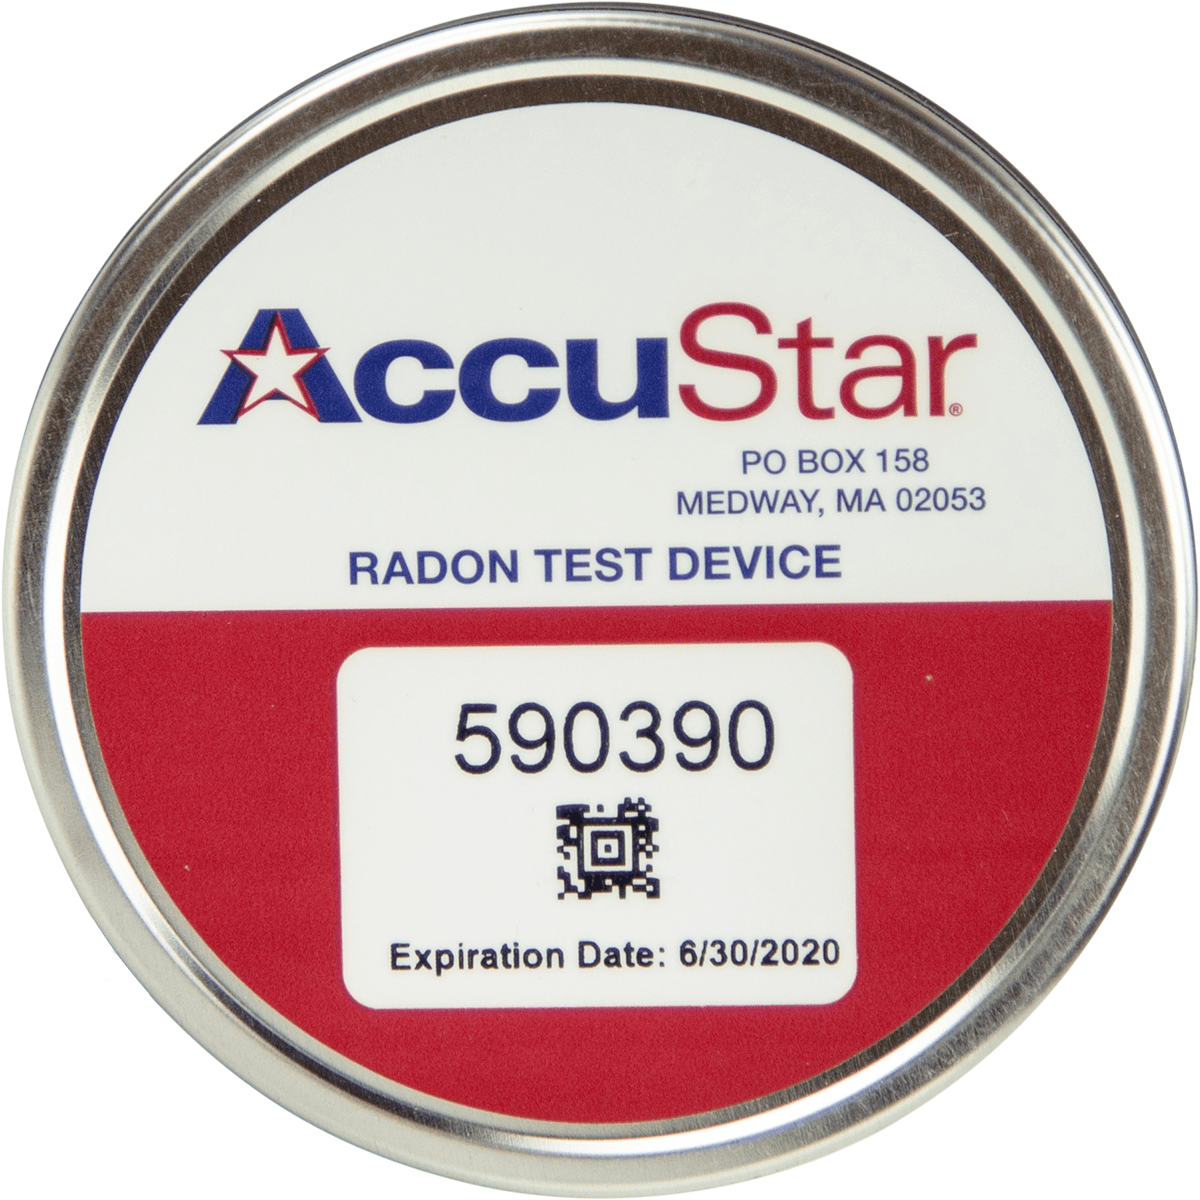 Accustar Picocan 400 Activated Charcoal Canister - Single